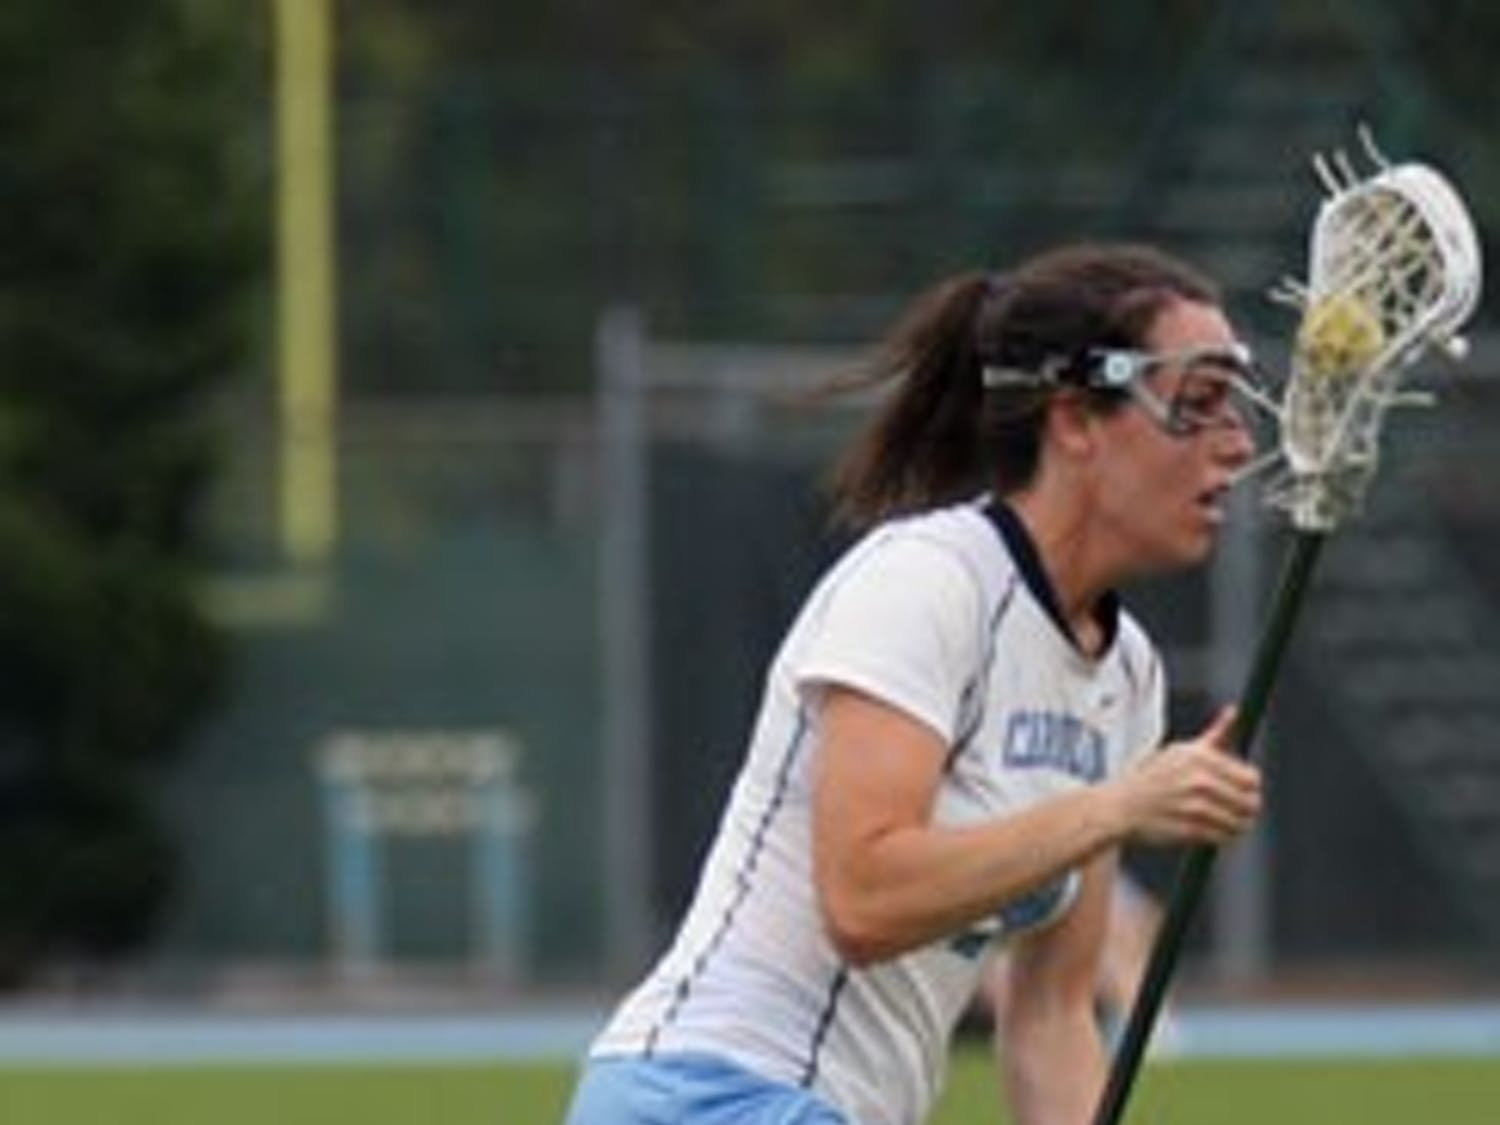 Midfielder Jenn Russell led the team with 38 goals in the season. She dished out 10 assists and was a first-team All-America honoree.